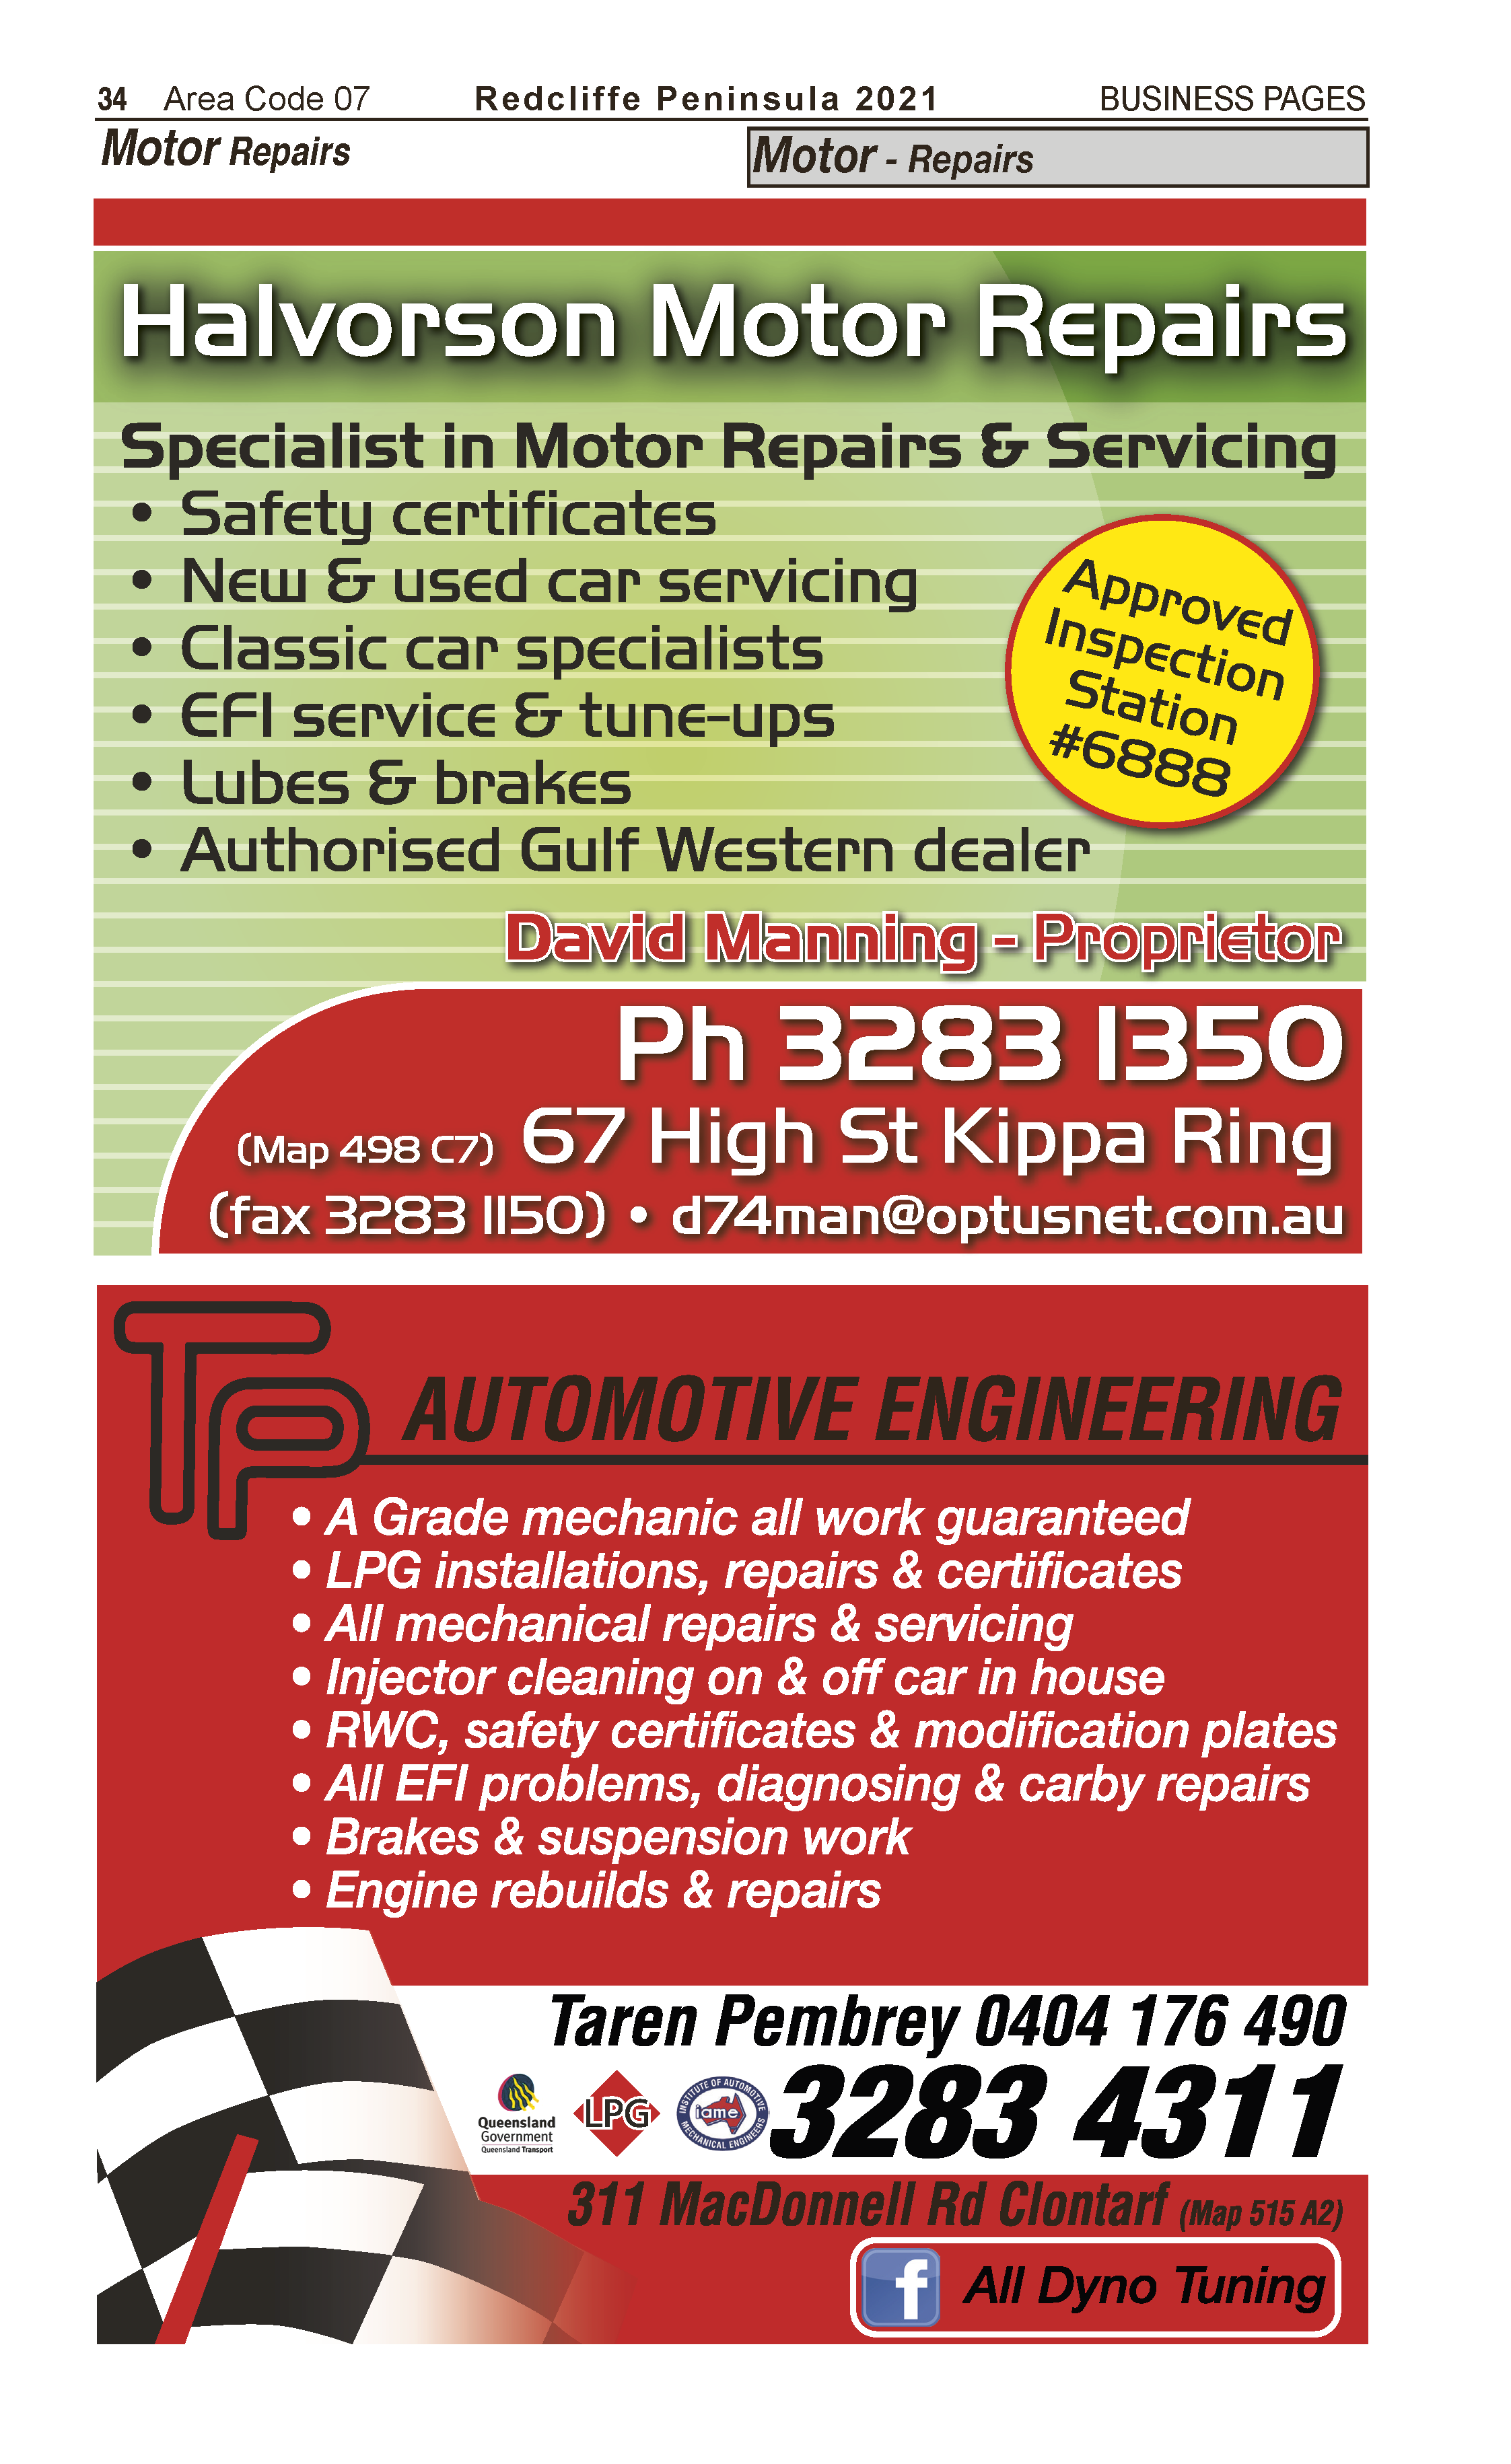 Halvorson Motor Repairs | Motor – Repairs in Kippa Ring | PBezy Pocket Books local directories - page 34